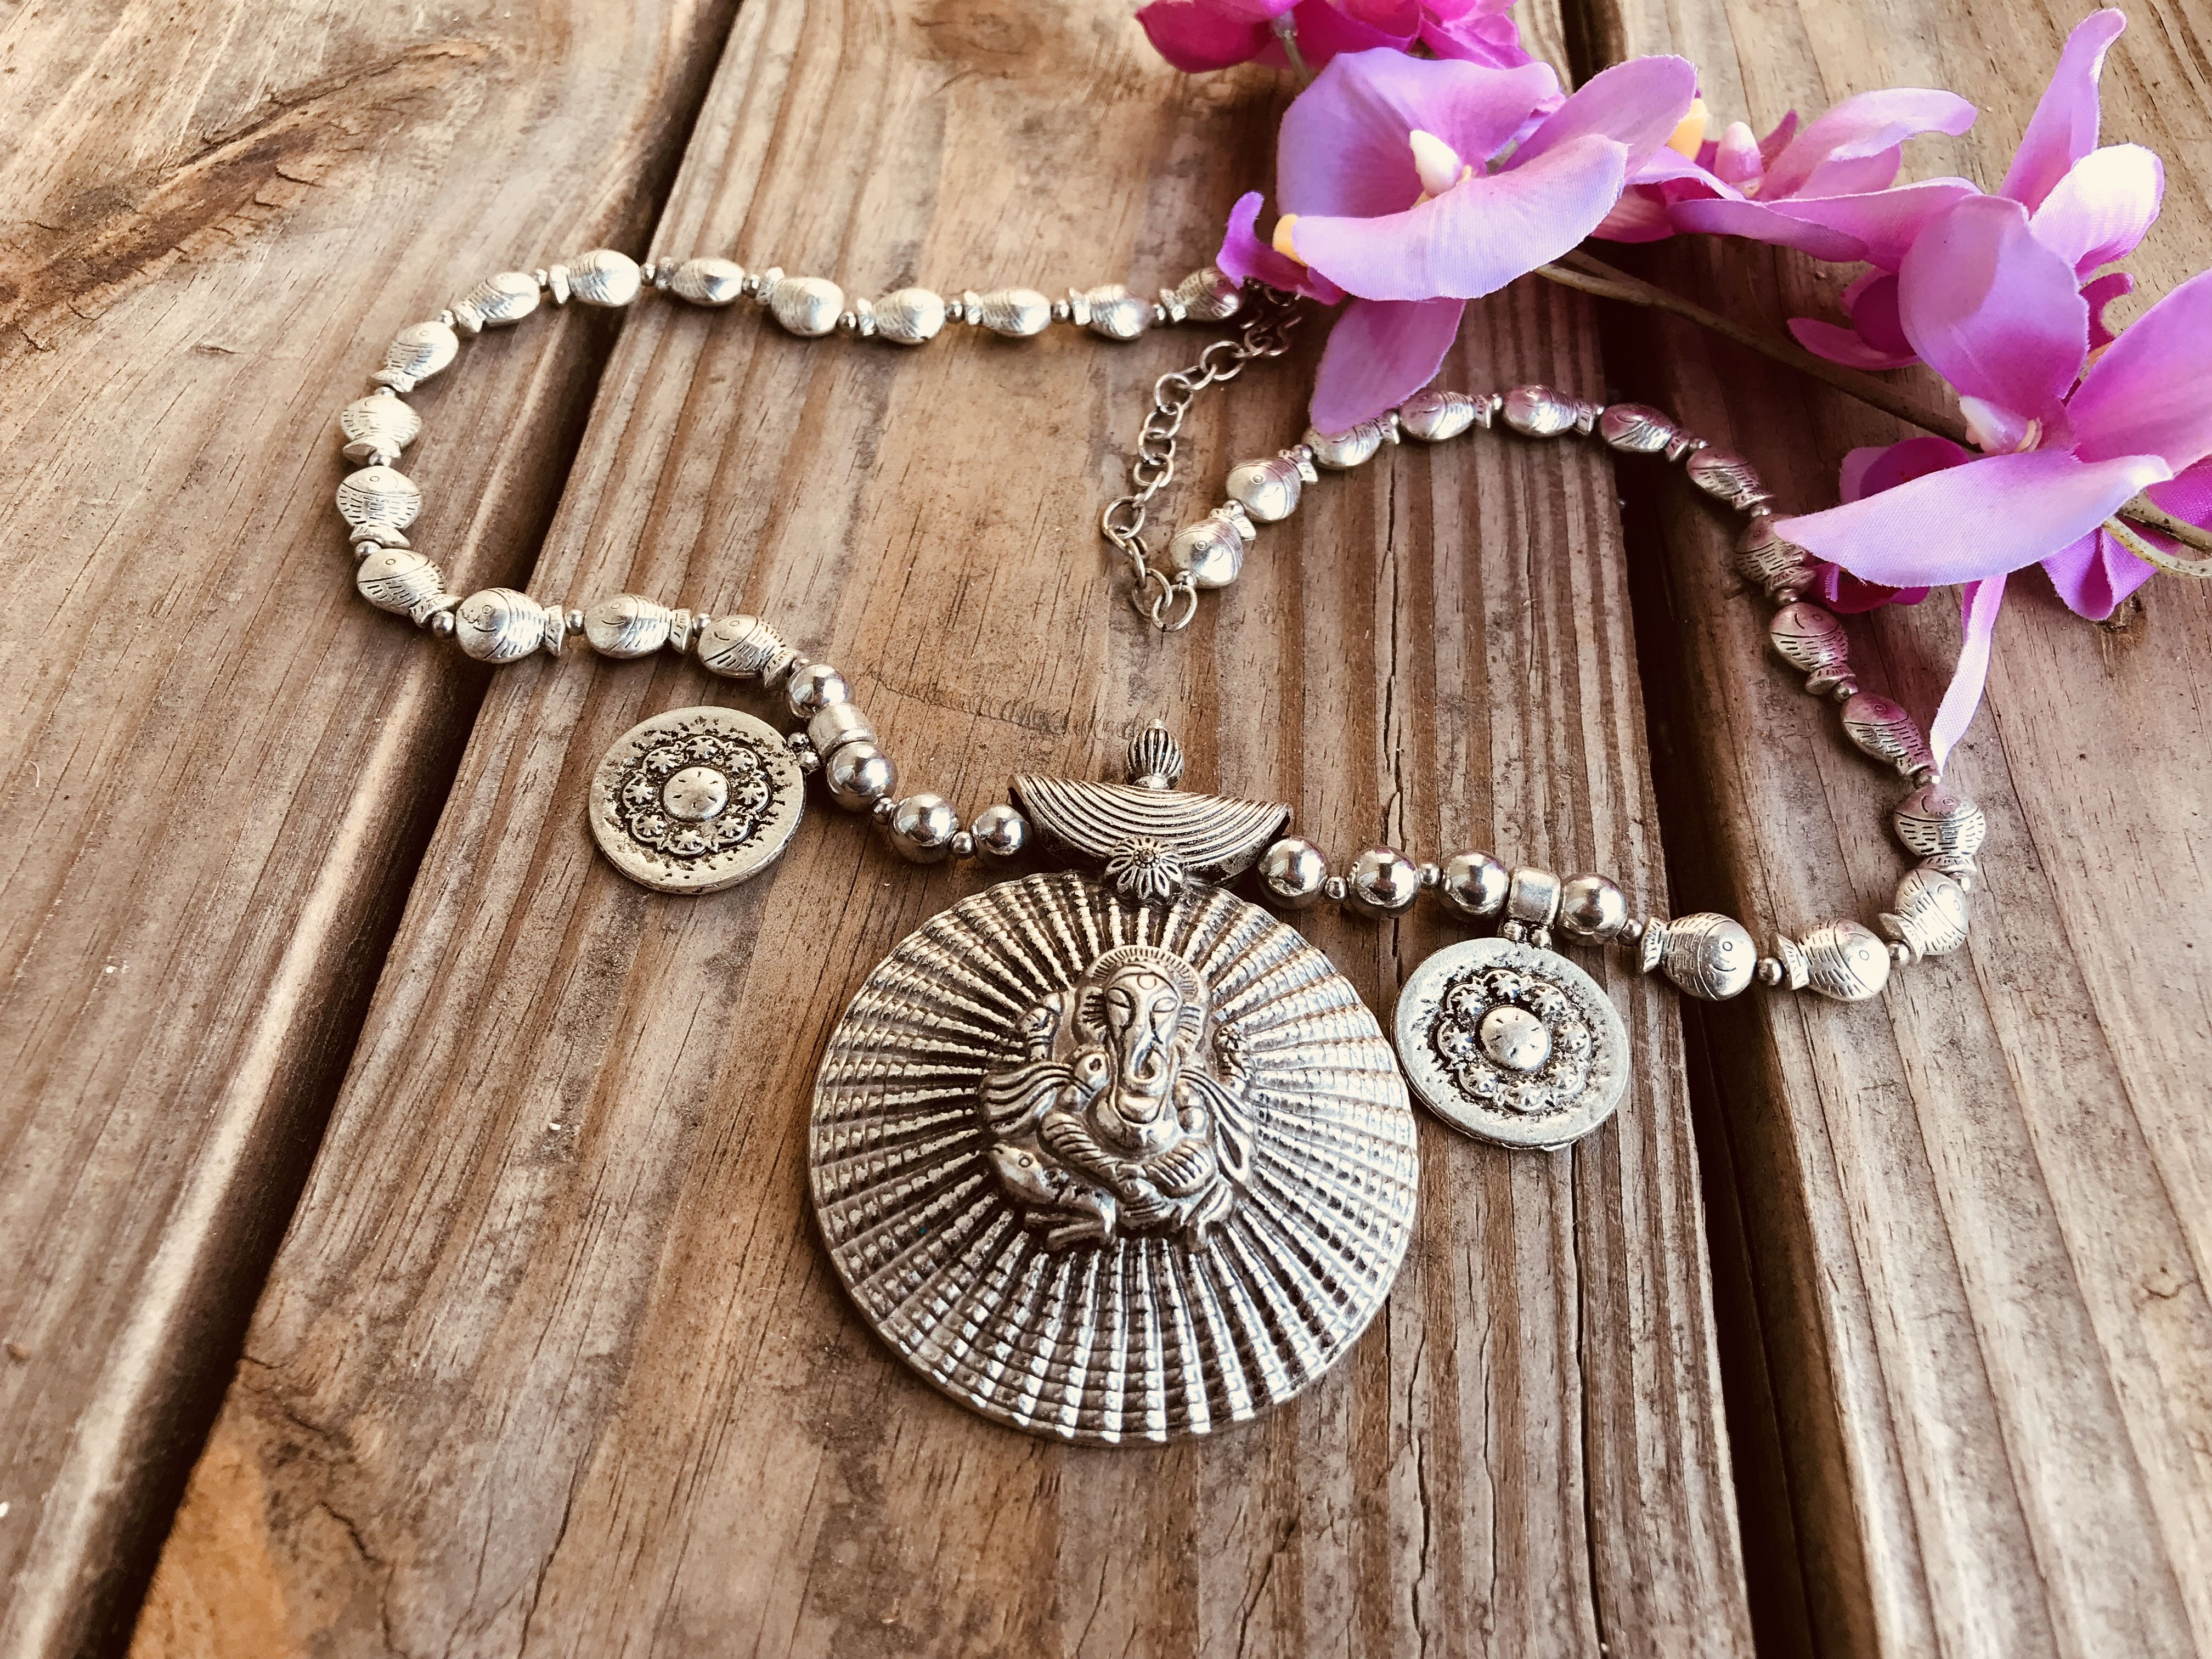 German Silver Ganesha Necklace Indian sarees, Jewelry